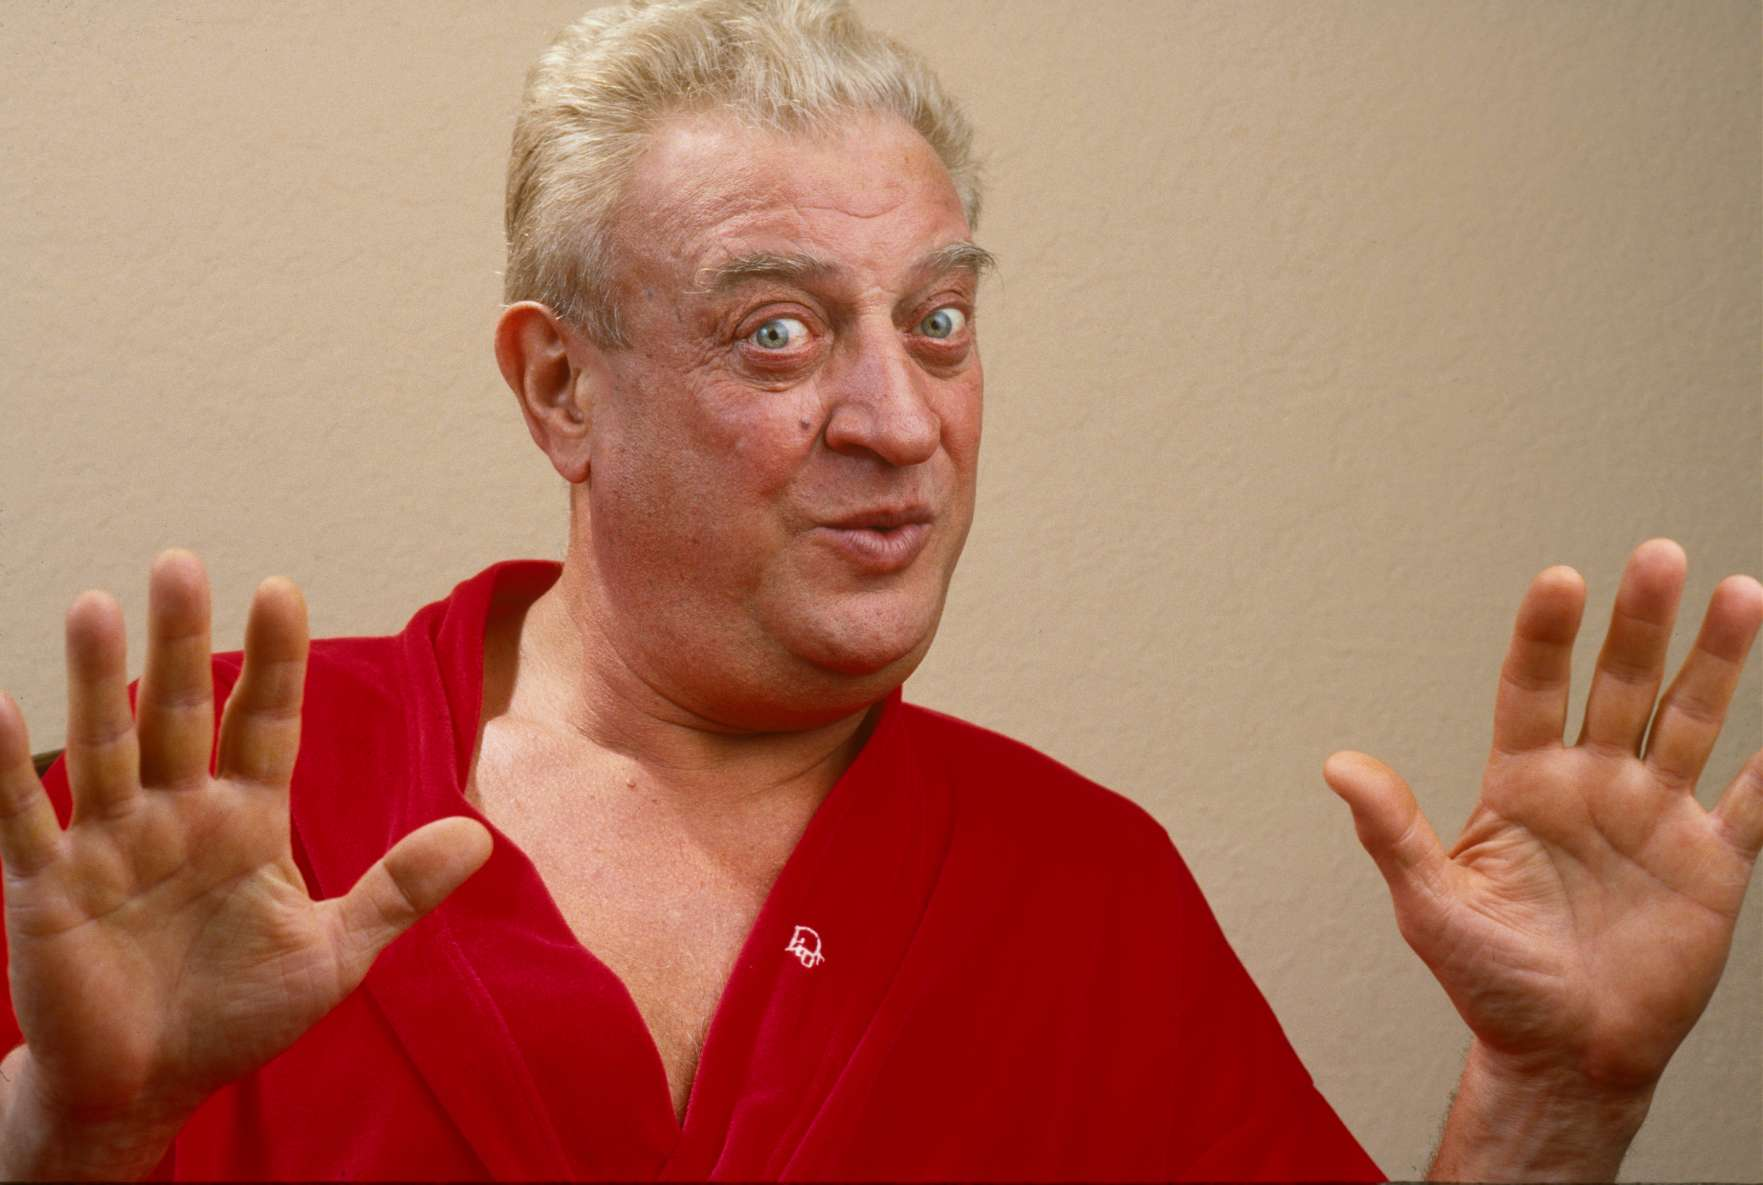 BEVERLY HILLS, CA - 1987:  Comedian and film star Rodney Dangerfield poses during a 1987 Beverly Hills, California, photo portrait session to promote his return to Las Vegas. Dangerfield starred in several hit movies including,  Caddyshack,   Easy Money,  and  Back to School.  He died of heart complications in 2004. (Photo by George Rose/Getty Images)